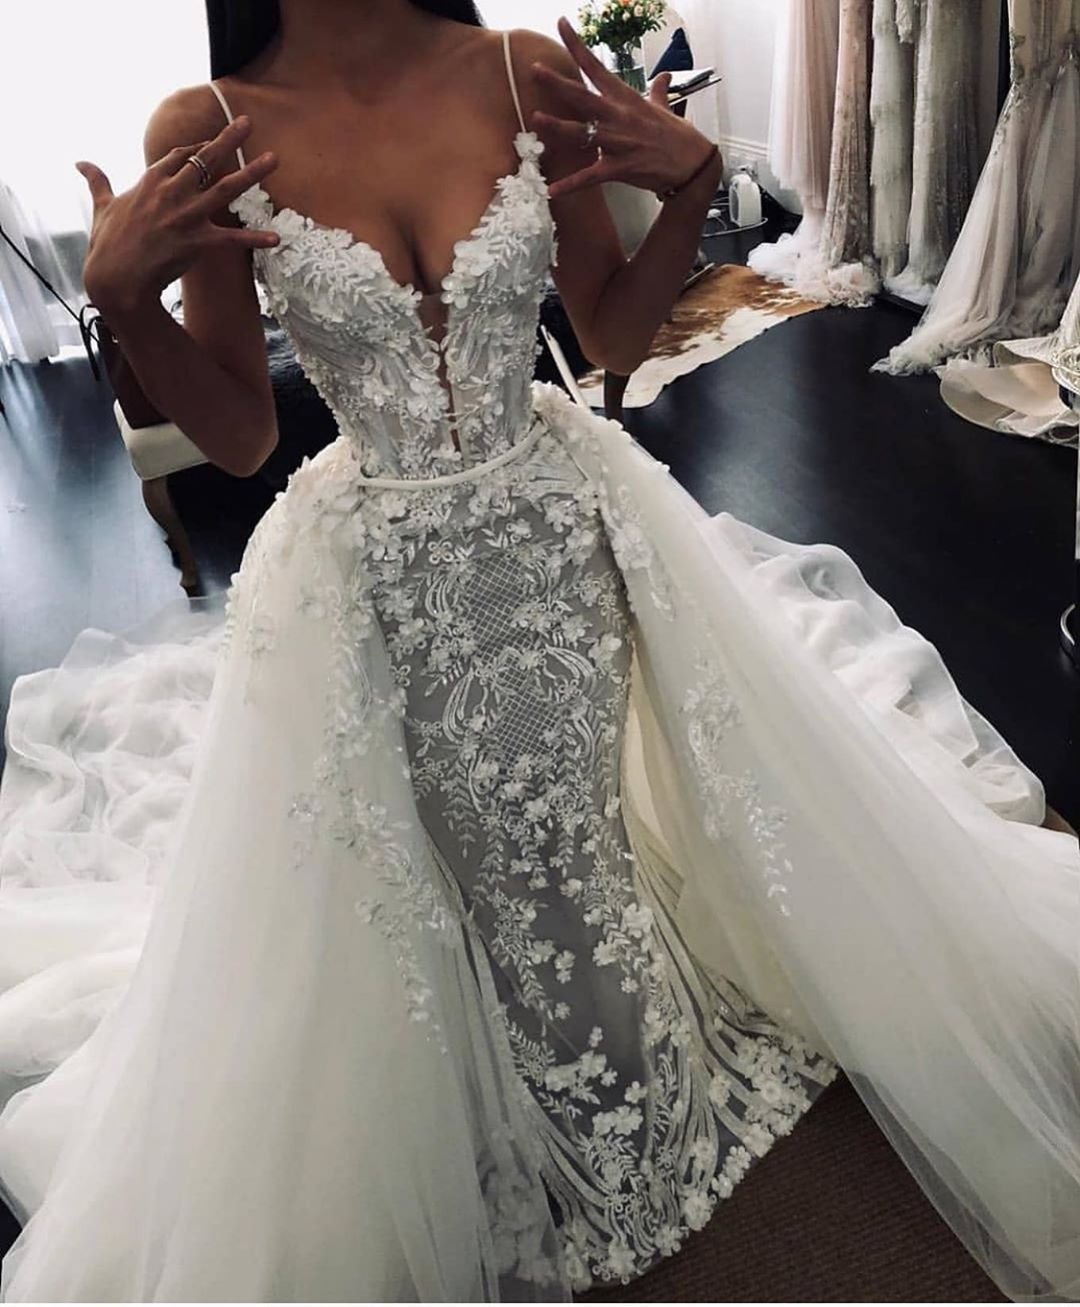 Affordable Designer Wedding Dresses From The Usa In 2020 Wedding Dress Silhouette Guide Ball Gown Wedding Dress Ball Dresses